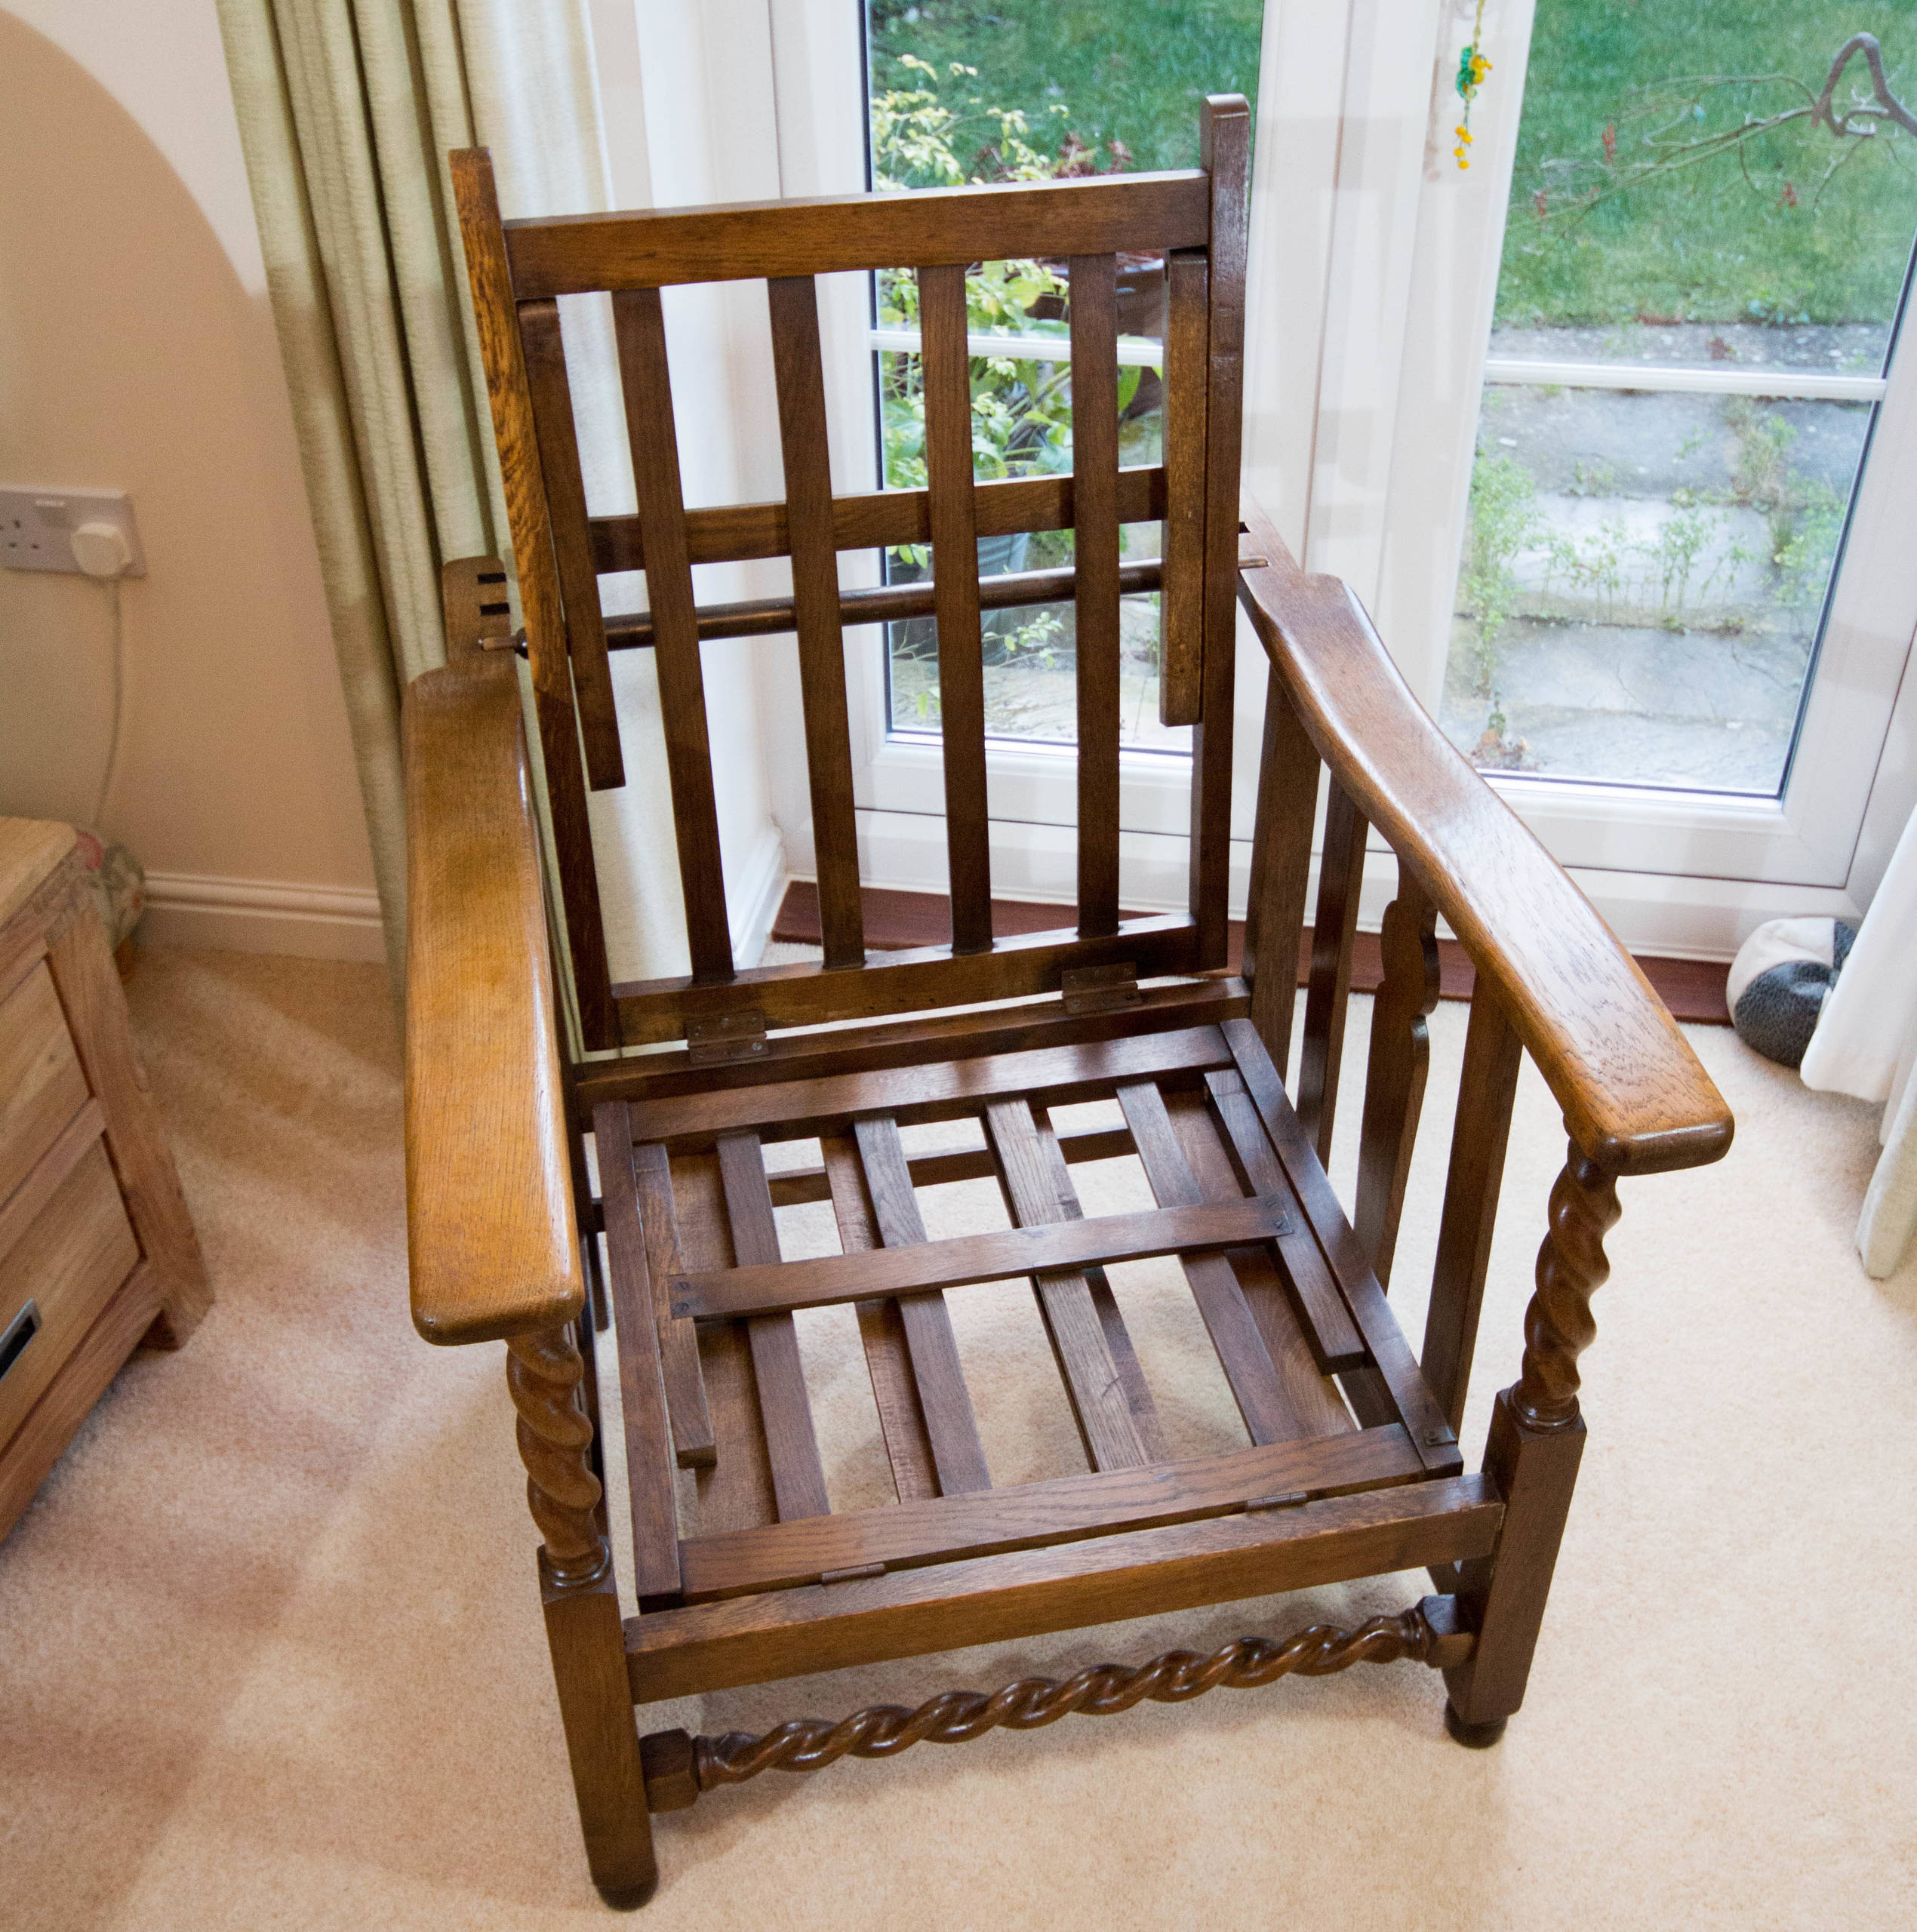 Refurbishment of Transforming mission chair